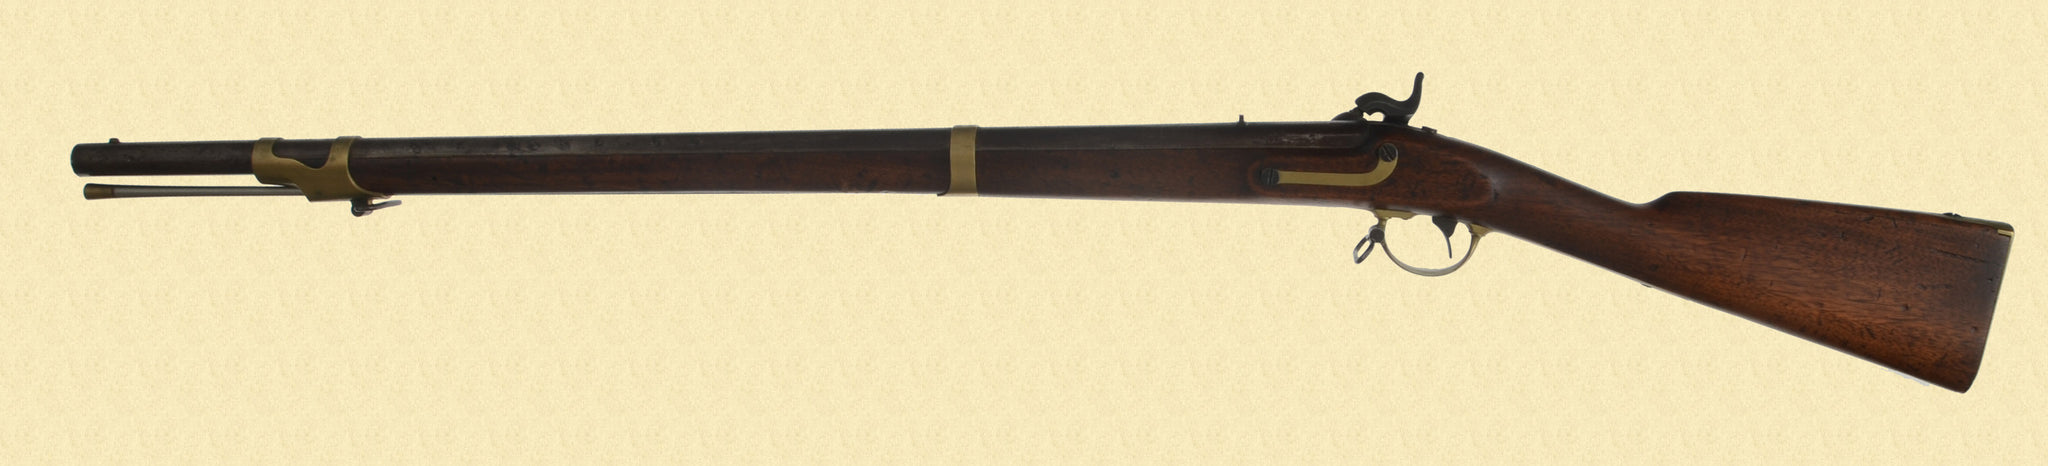 E. WHITNEY 1841 PERCUSSION RIFLE